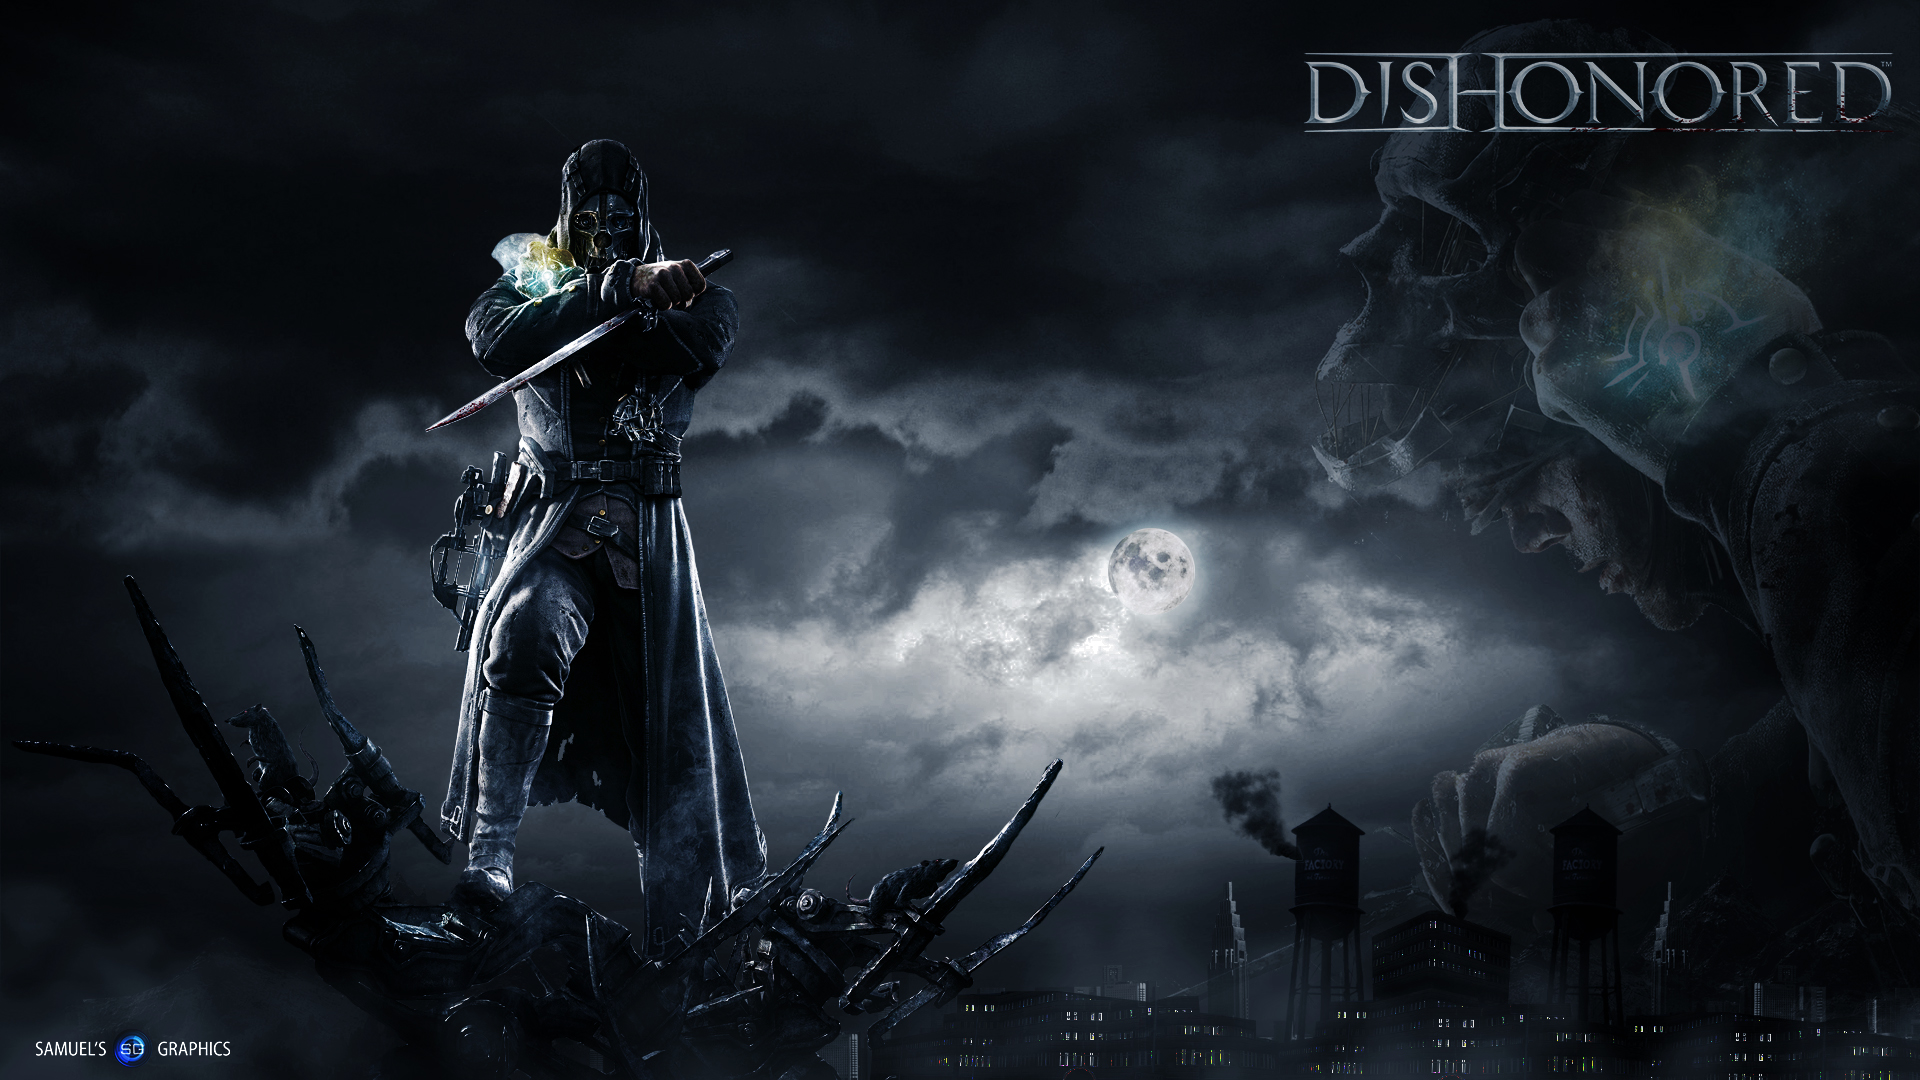 Dishonored Hd Wallpaper By Samuels Graphics On Deviantart